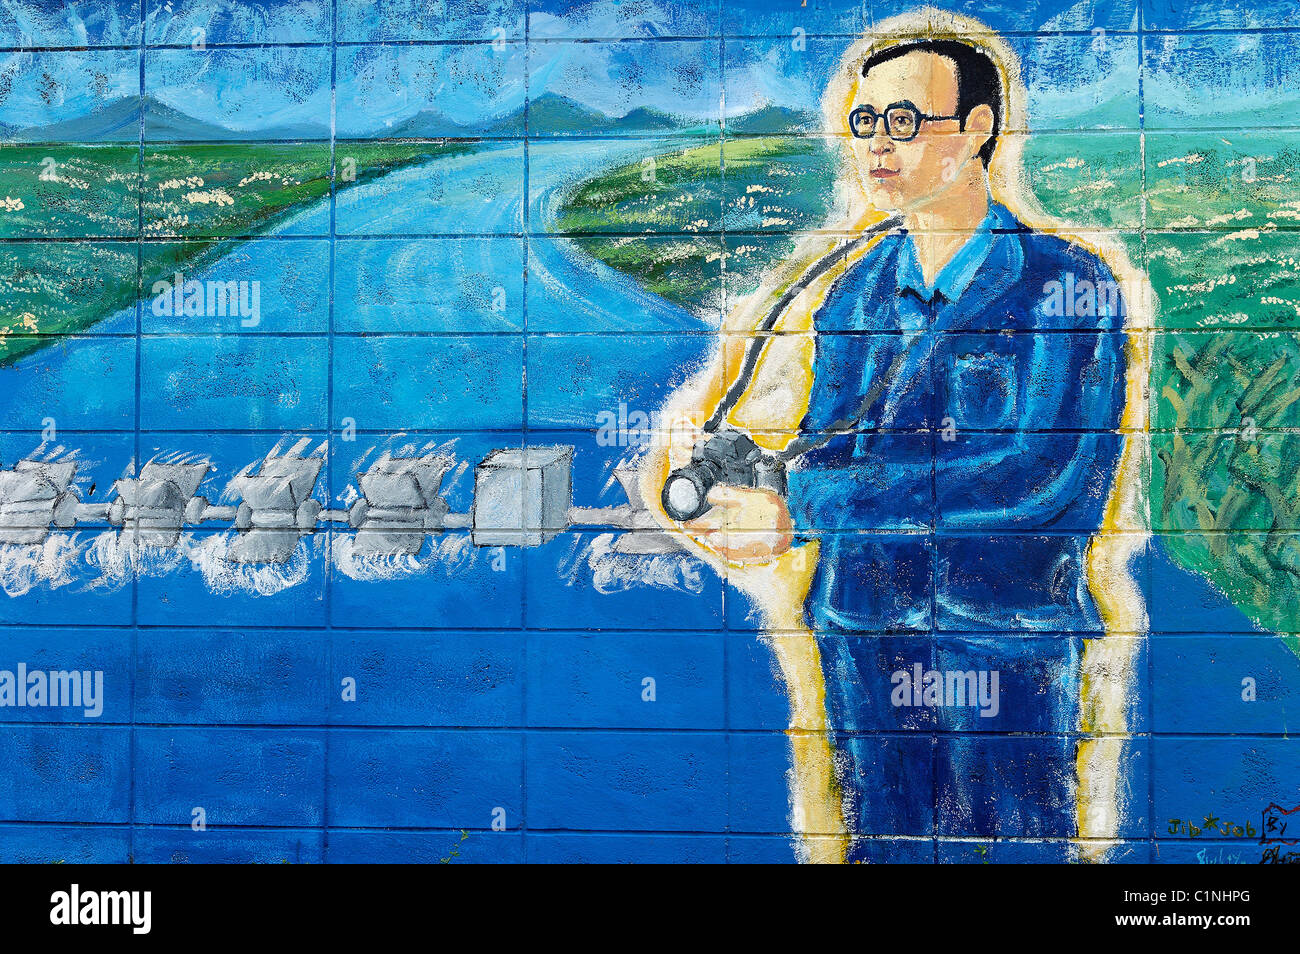 Thailand, Bangkok, king Bhumibol Rama IX (the world's longest serving monarch) painted by schoolchildren - Stock Image